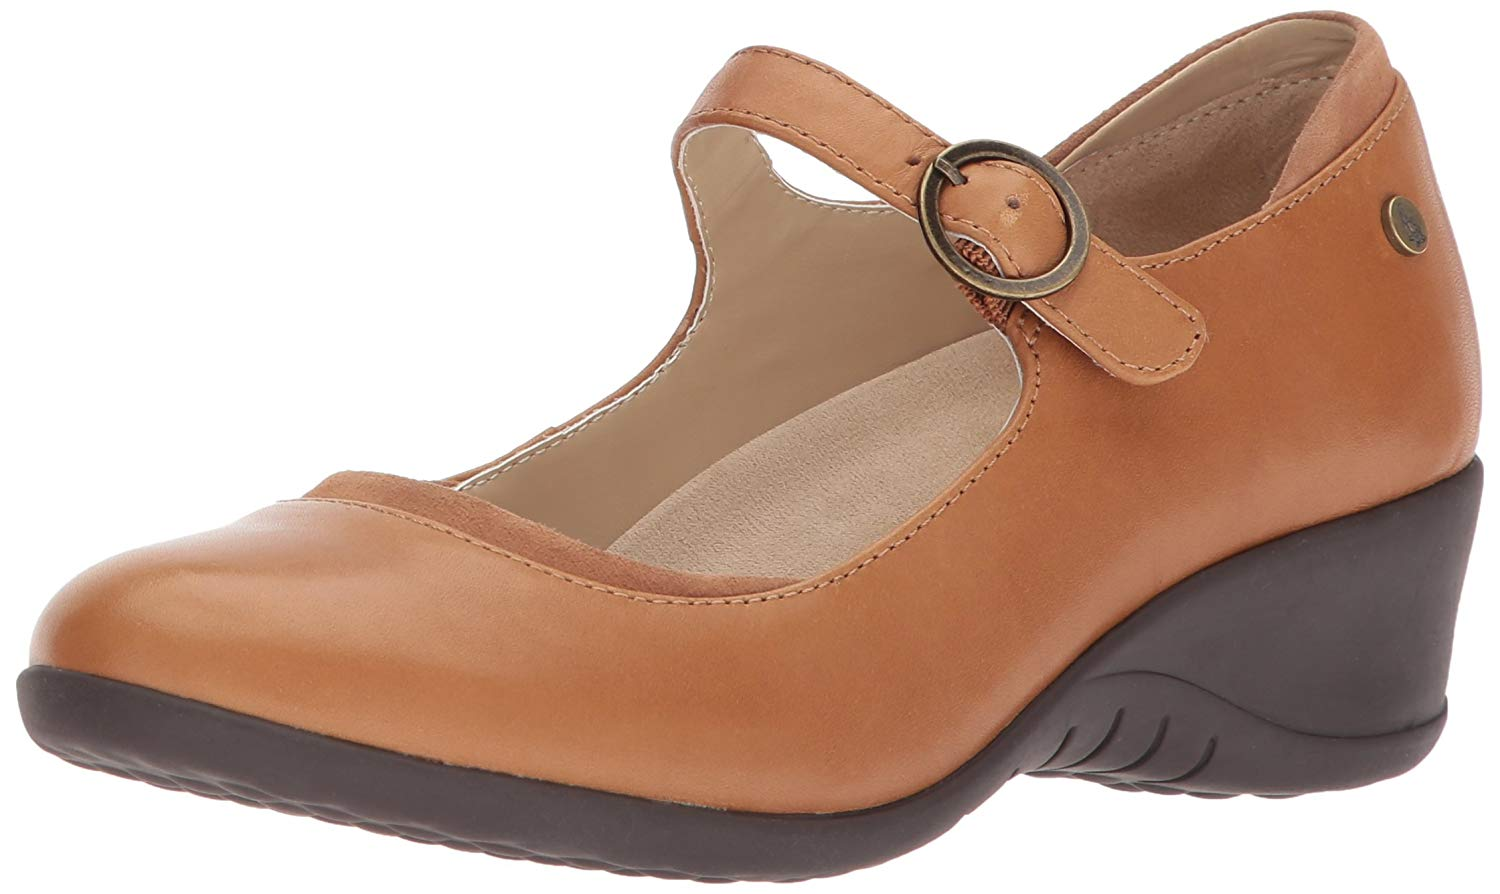 Hush Puppies Womens ODELL Mary Jane Leather Closed Toe Casual, Tan, Size 7.5